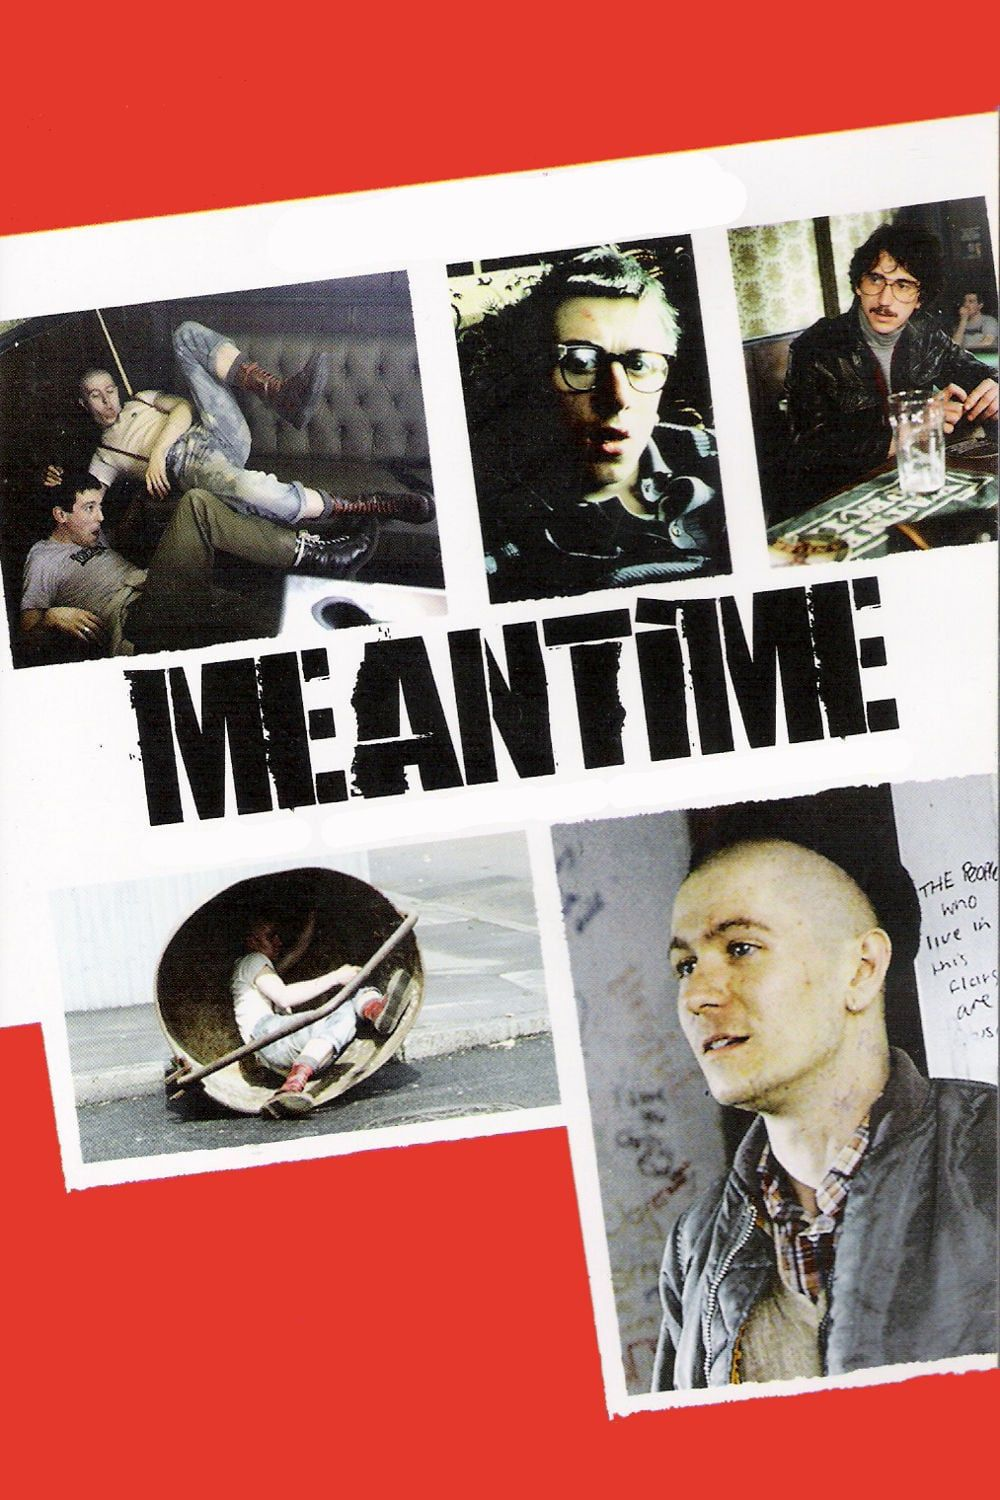 Meantime (1983) Téléchargement free complets (With images